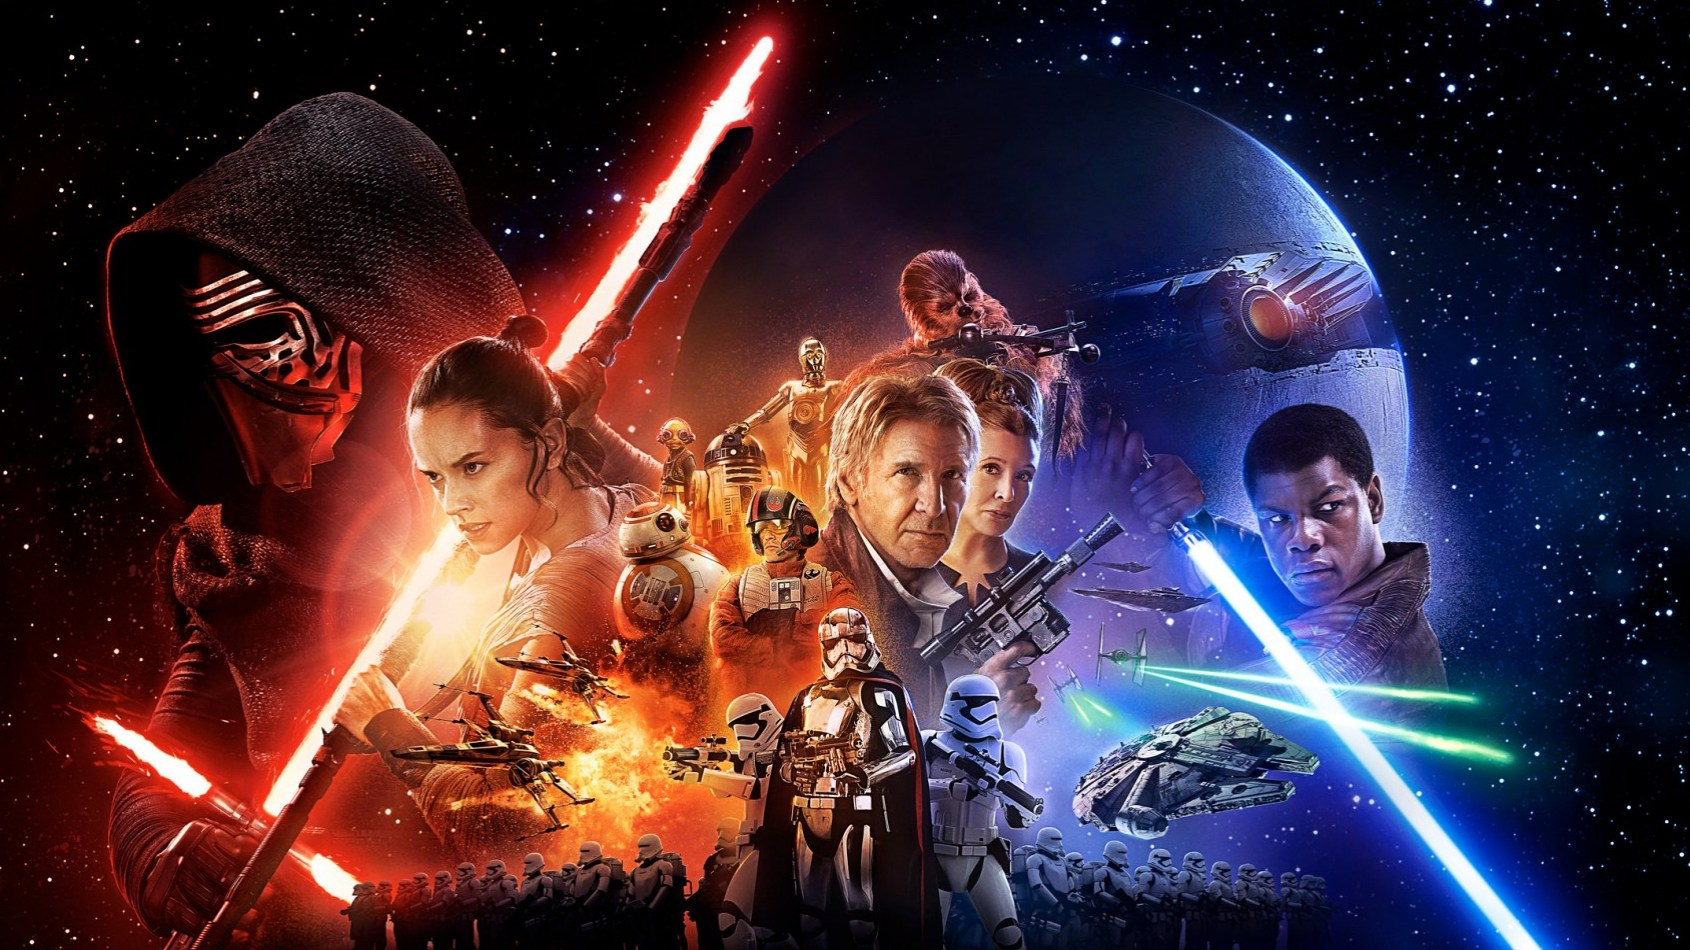 STAR WARS - 7. LE REVEIL DE LA FORCE